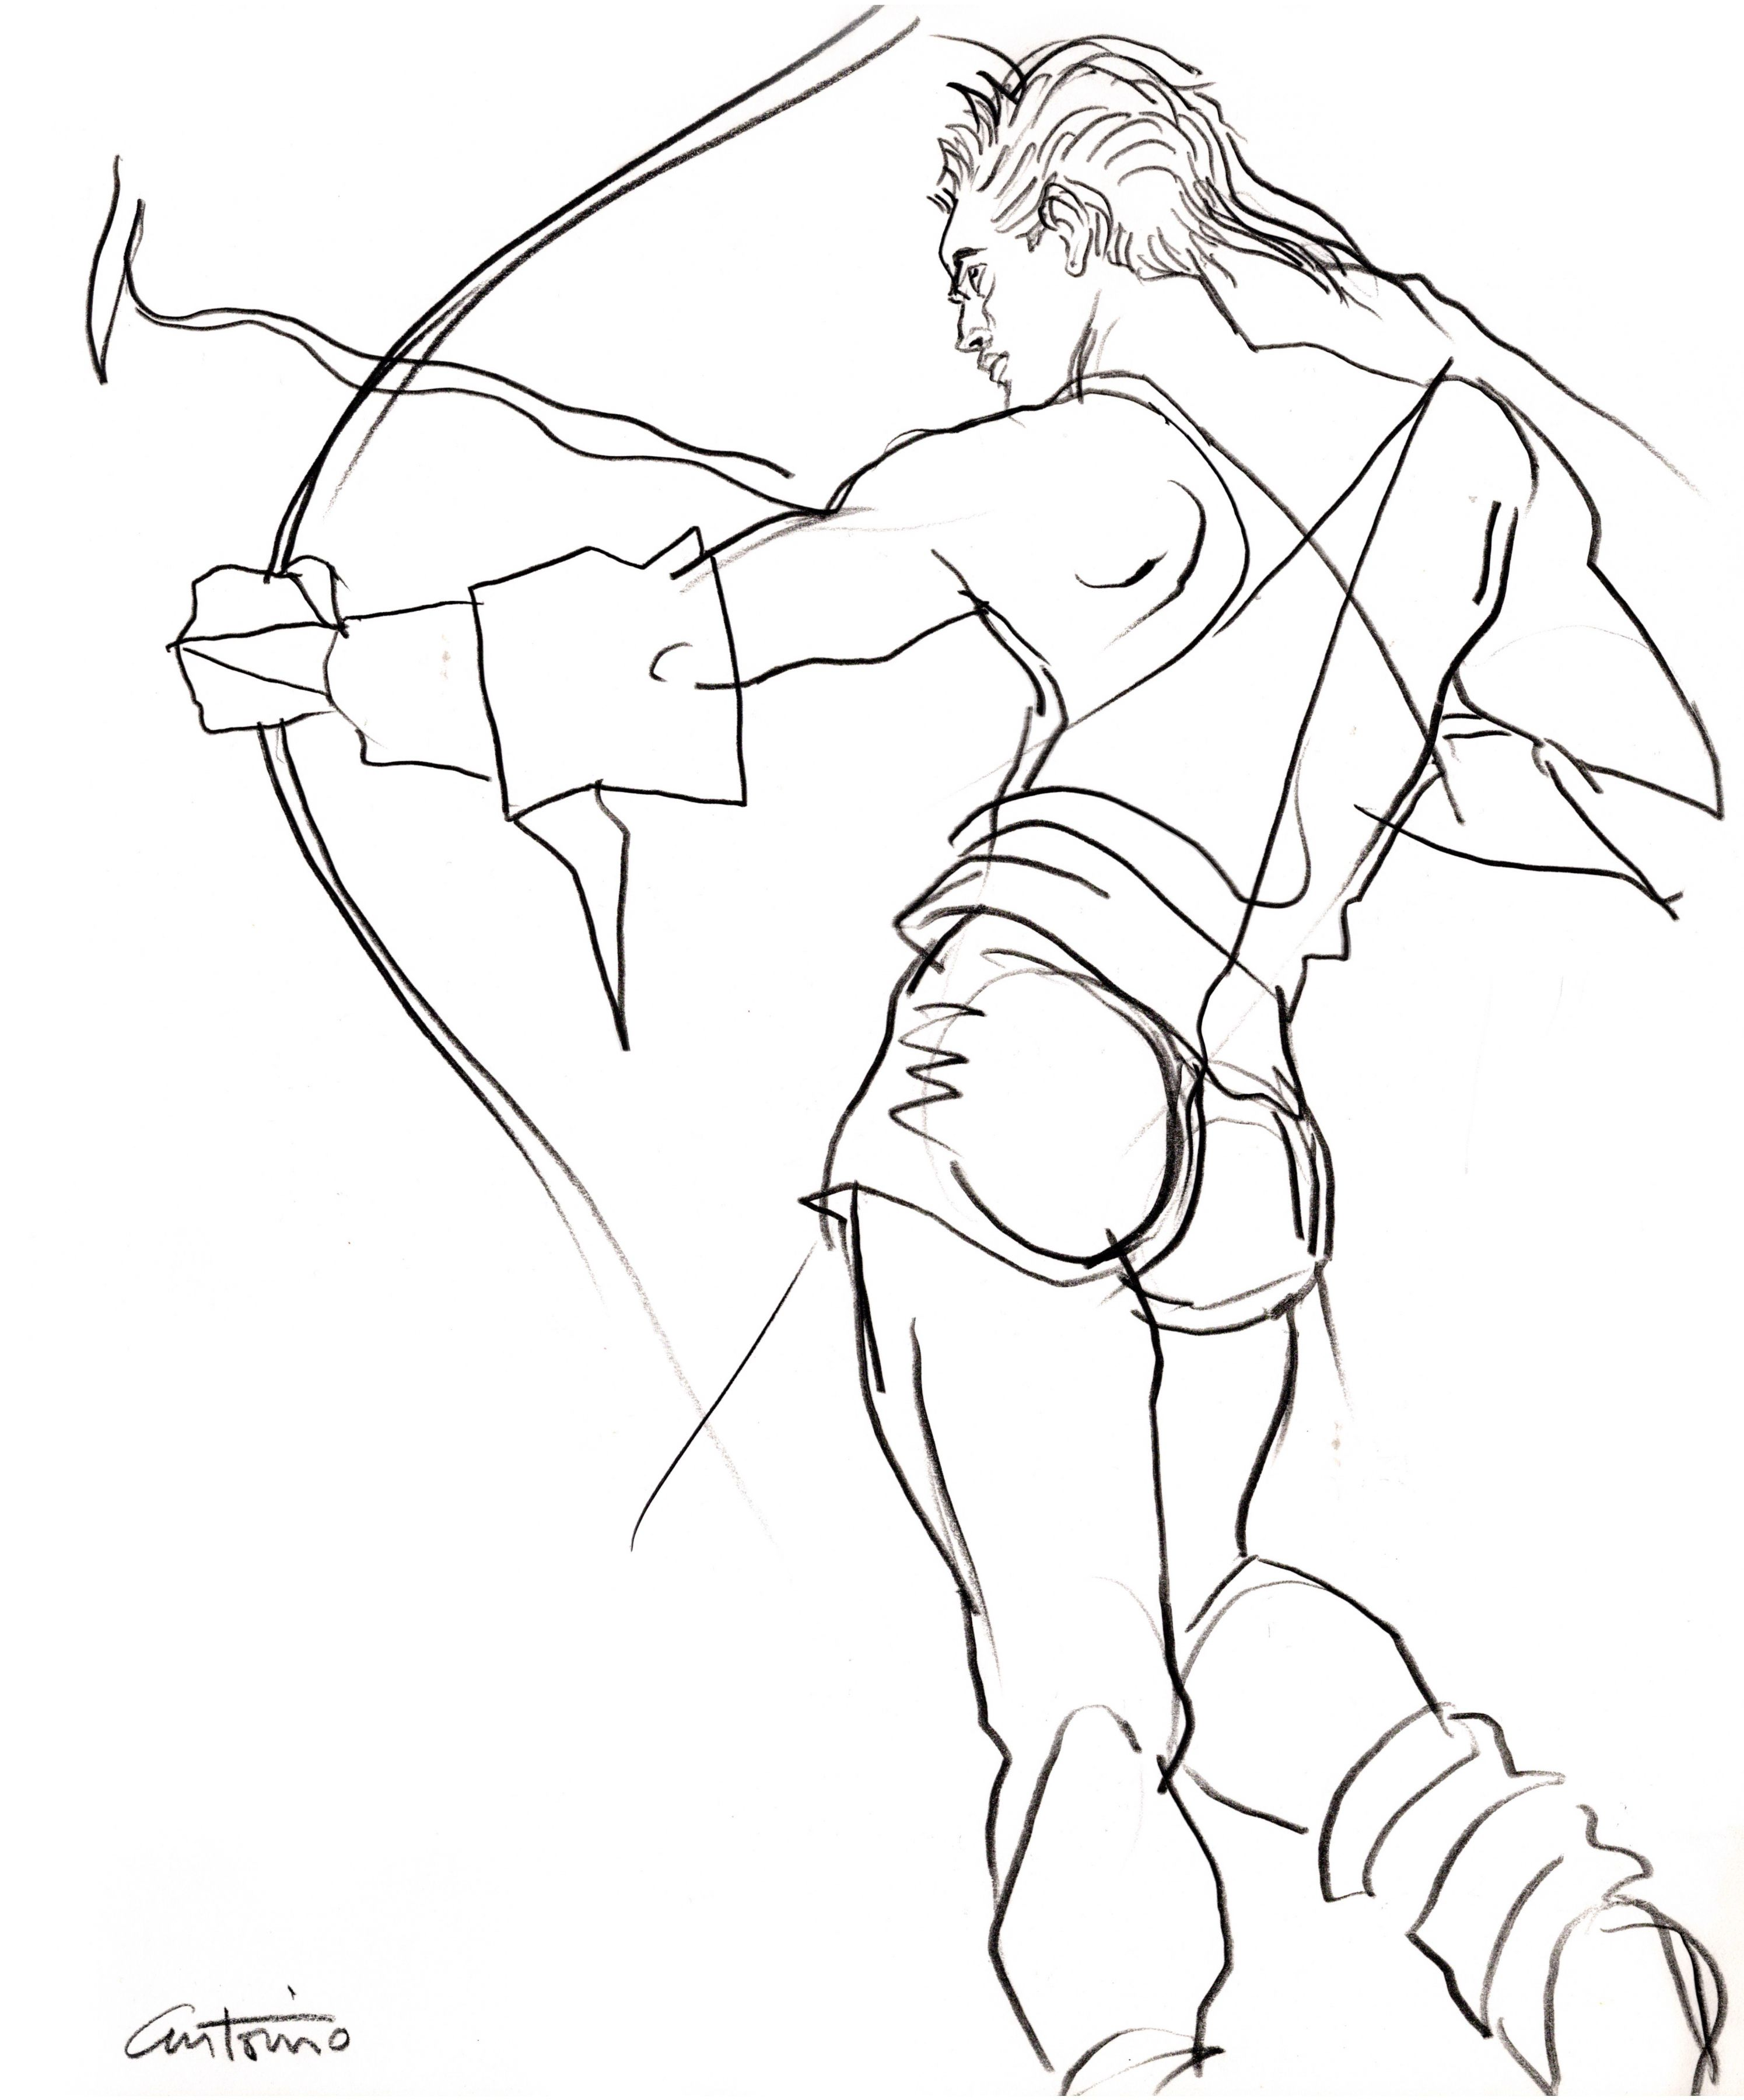 Drawing of archer by Antonio Lopez